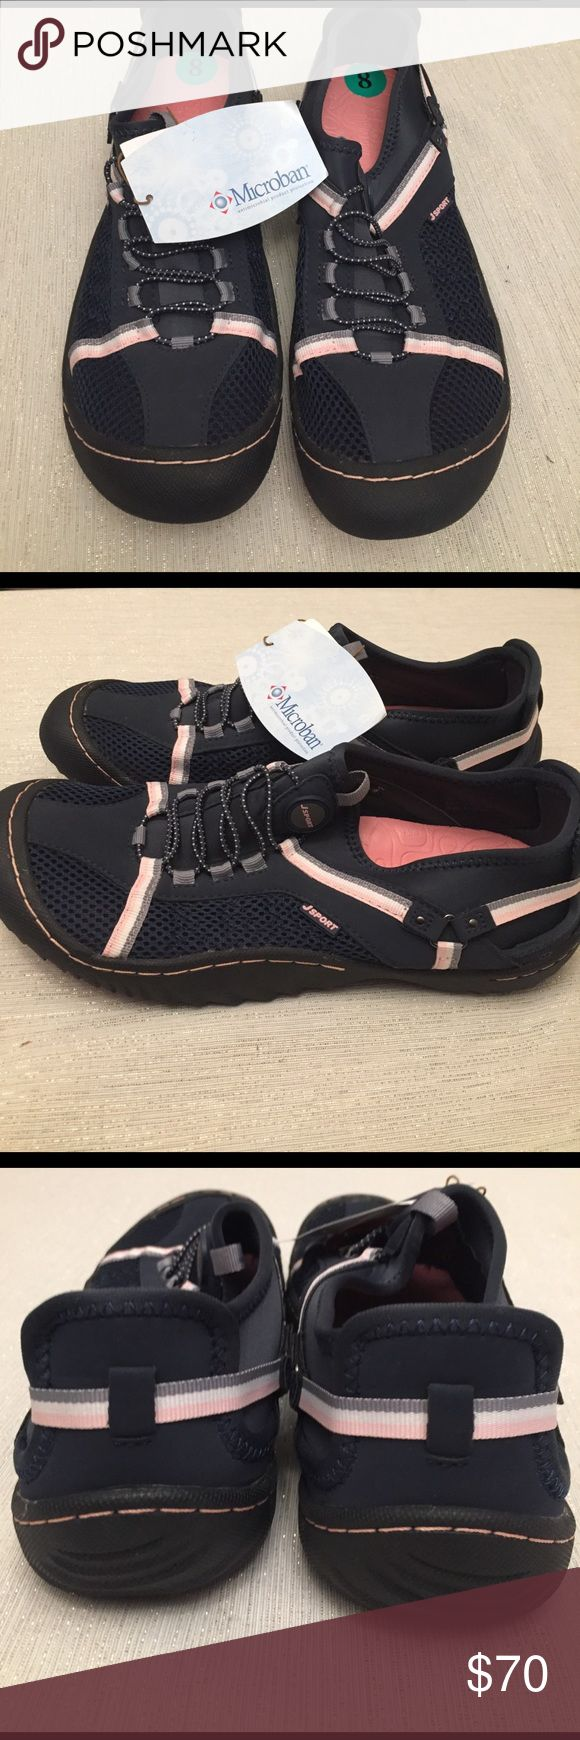 J Sport J-41 Tahoe Sport Hiking Vegan Sneaker Women's size 8. NWT. Navy blue/pink color. Mid ankle height. Treaded outsole. Vegan. Water ready. Non marking, partially recycled compressed rubber outsole. Slip on, bungee lace design. Jeep engineered and trail rated. Retail $90 J Sport Shoes Athletic Shoes